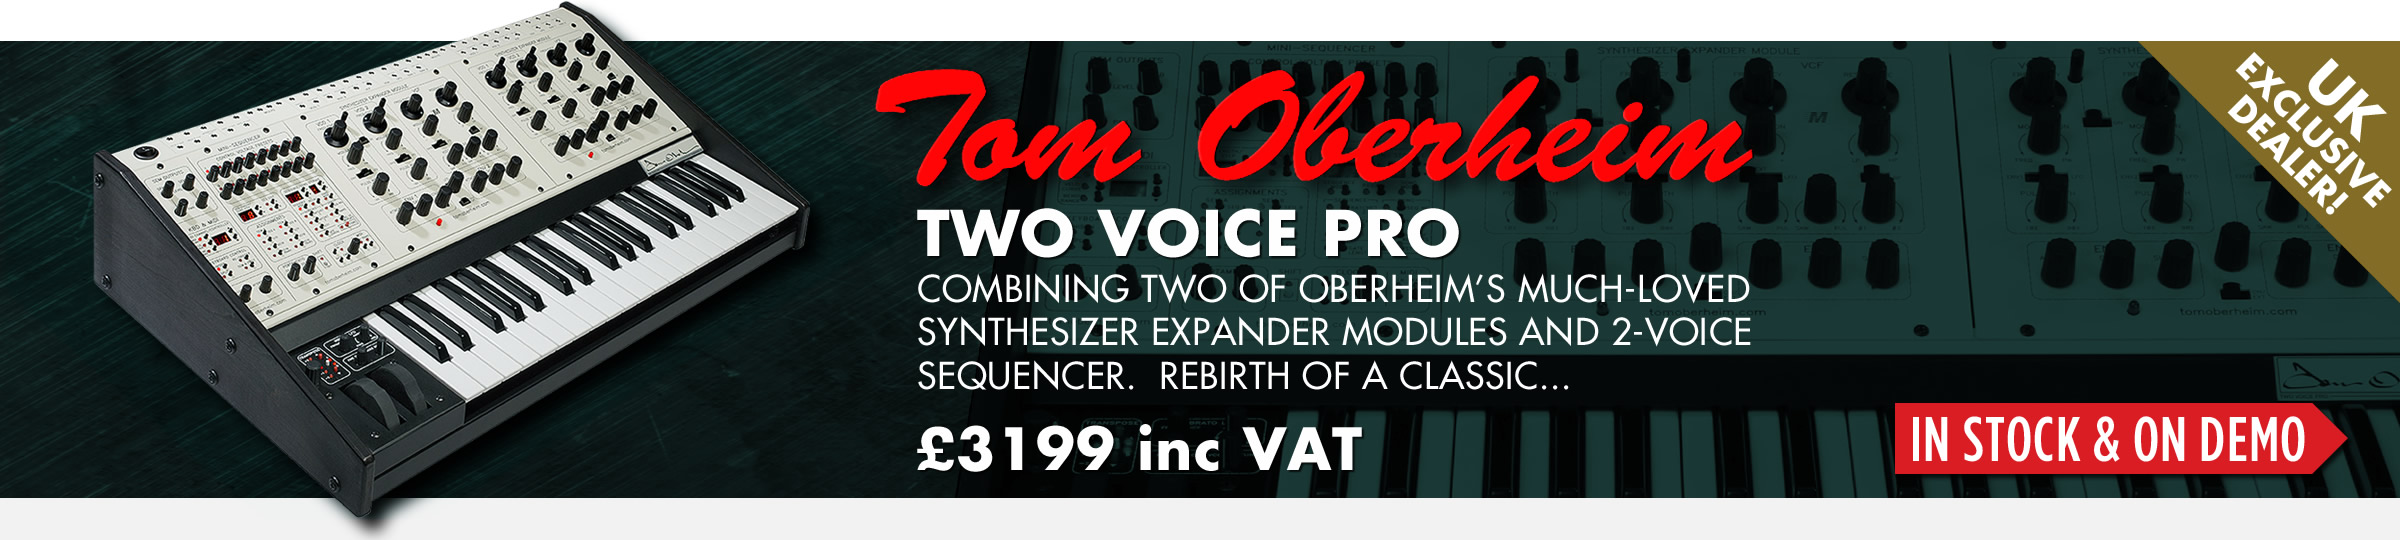 Tom Oberheim Two Voice Pro Analogue Synthesizer